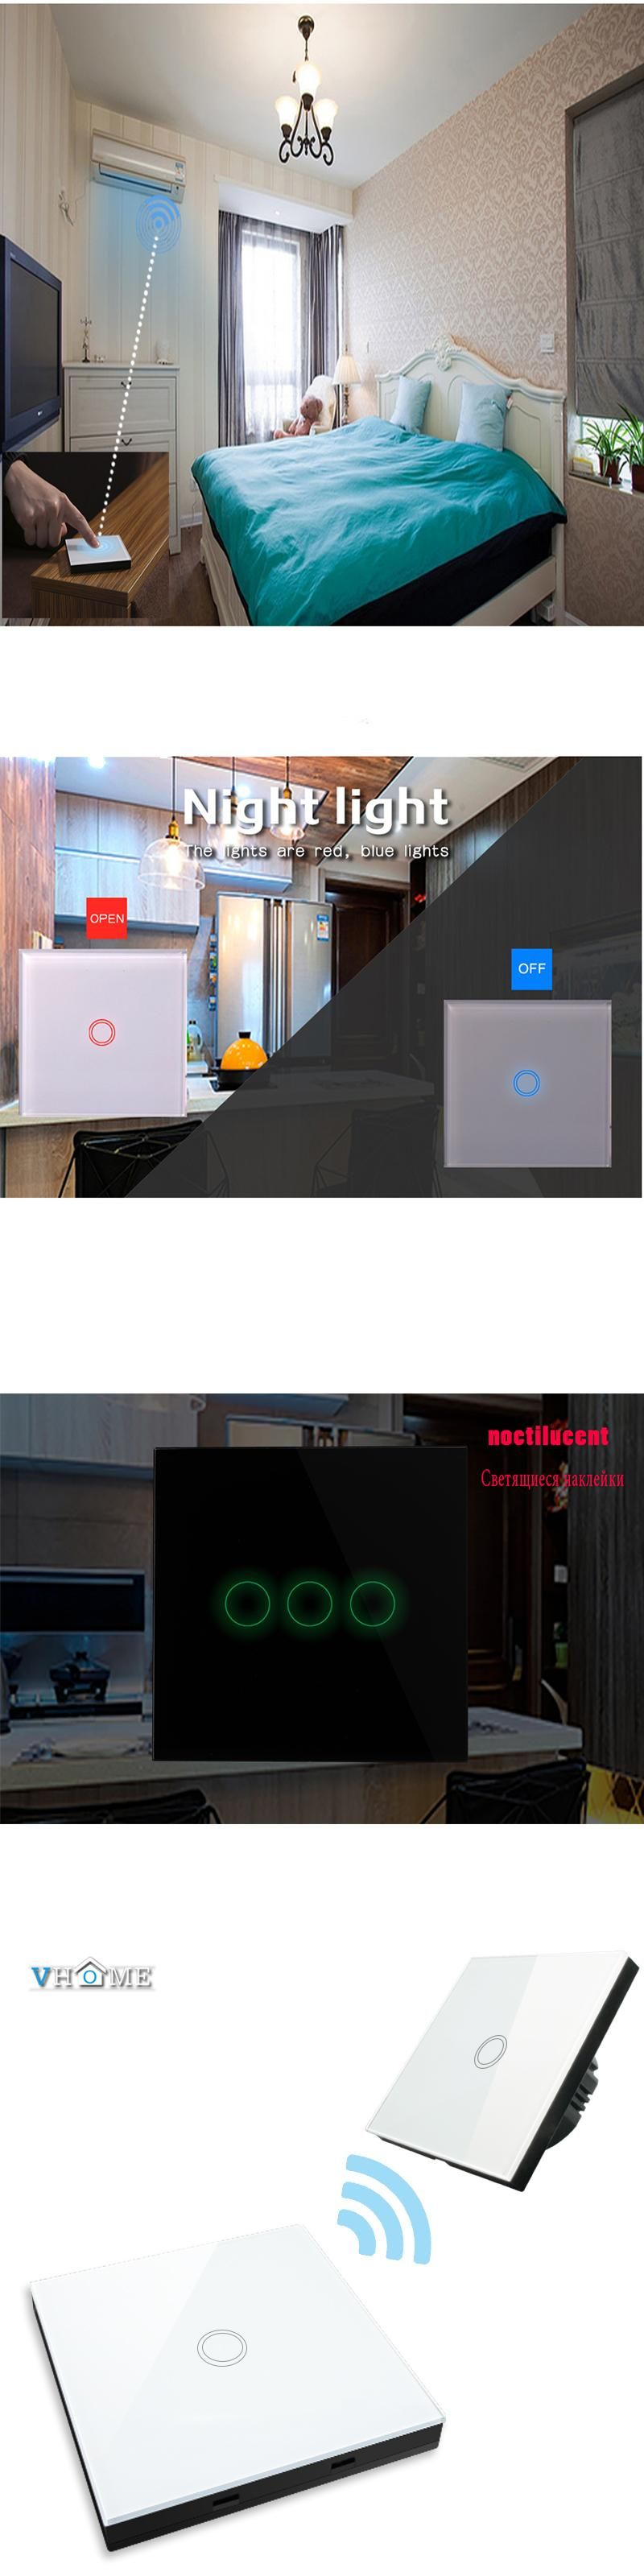 glstouch light gang parts switch full glass way white touch rf panel crystal